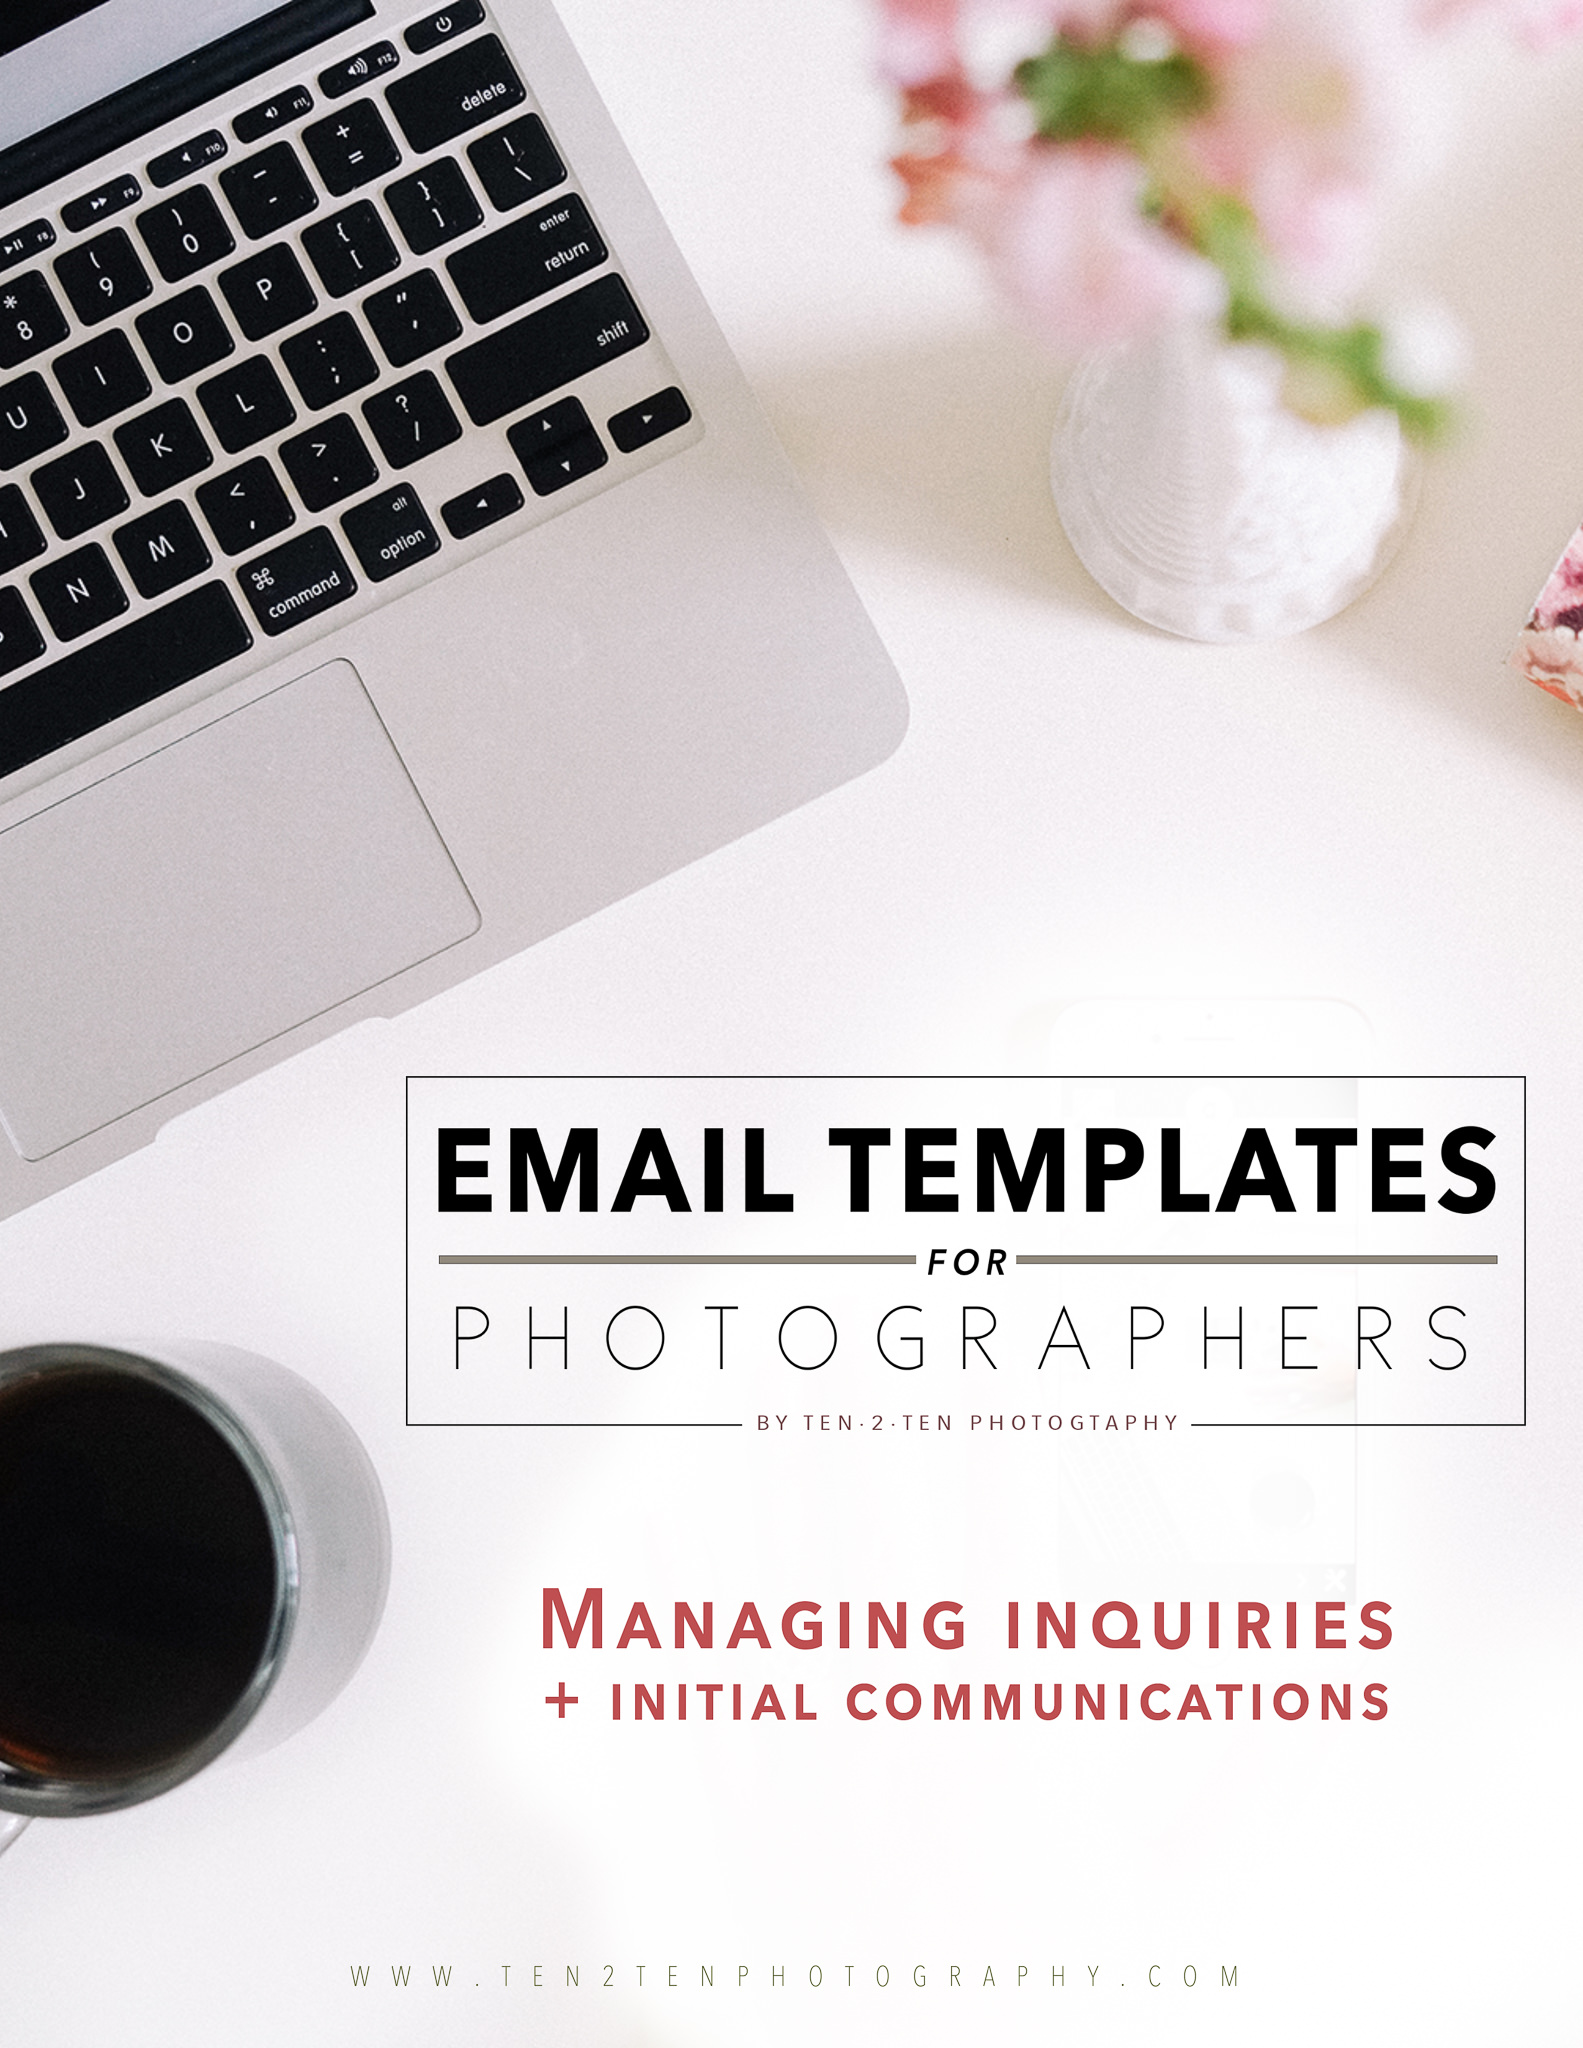 email templates for photographers 8 - Shop